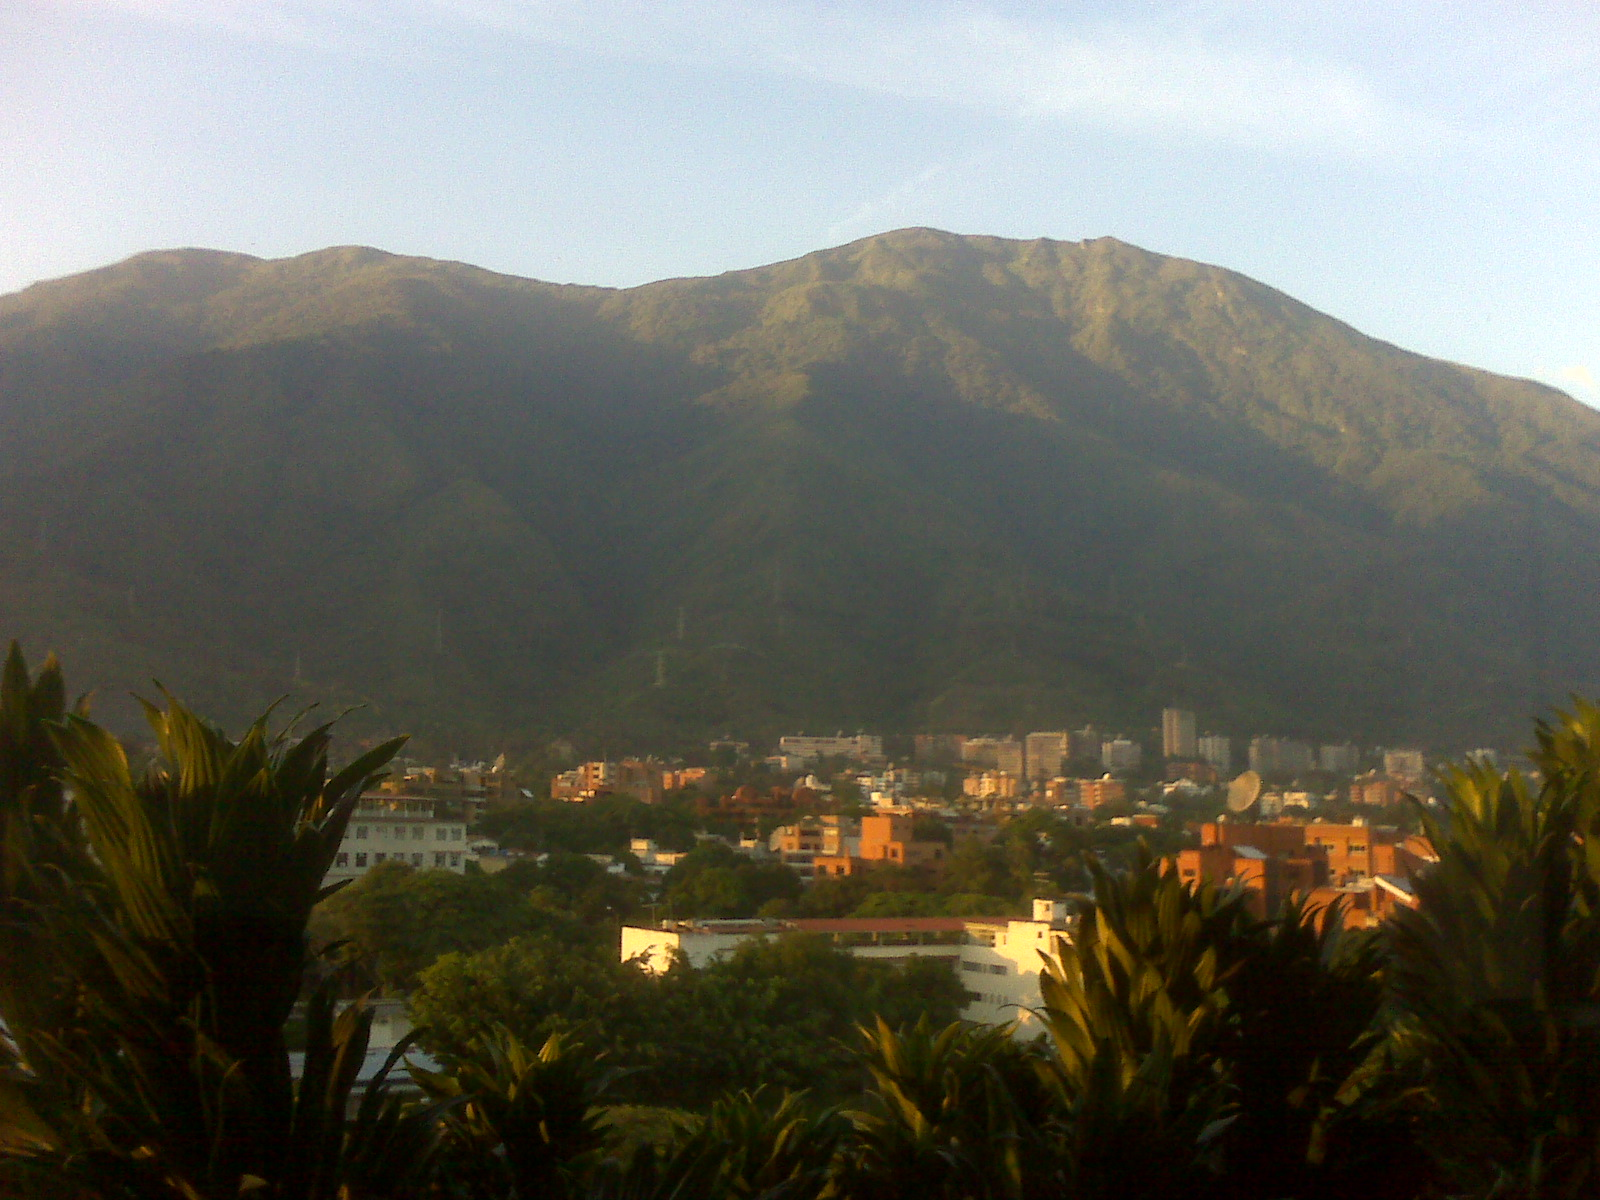 El Avila Mountain separates the Venezuelan capital of Caracas from the Caribbean, just 17 miles on the other side.